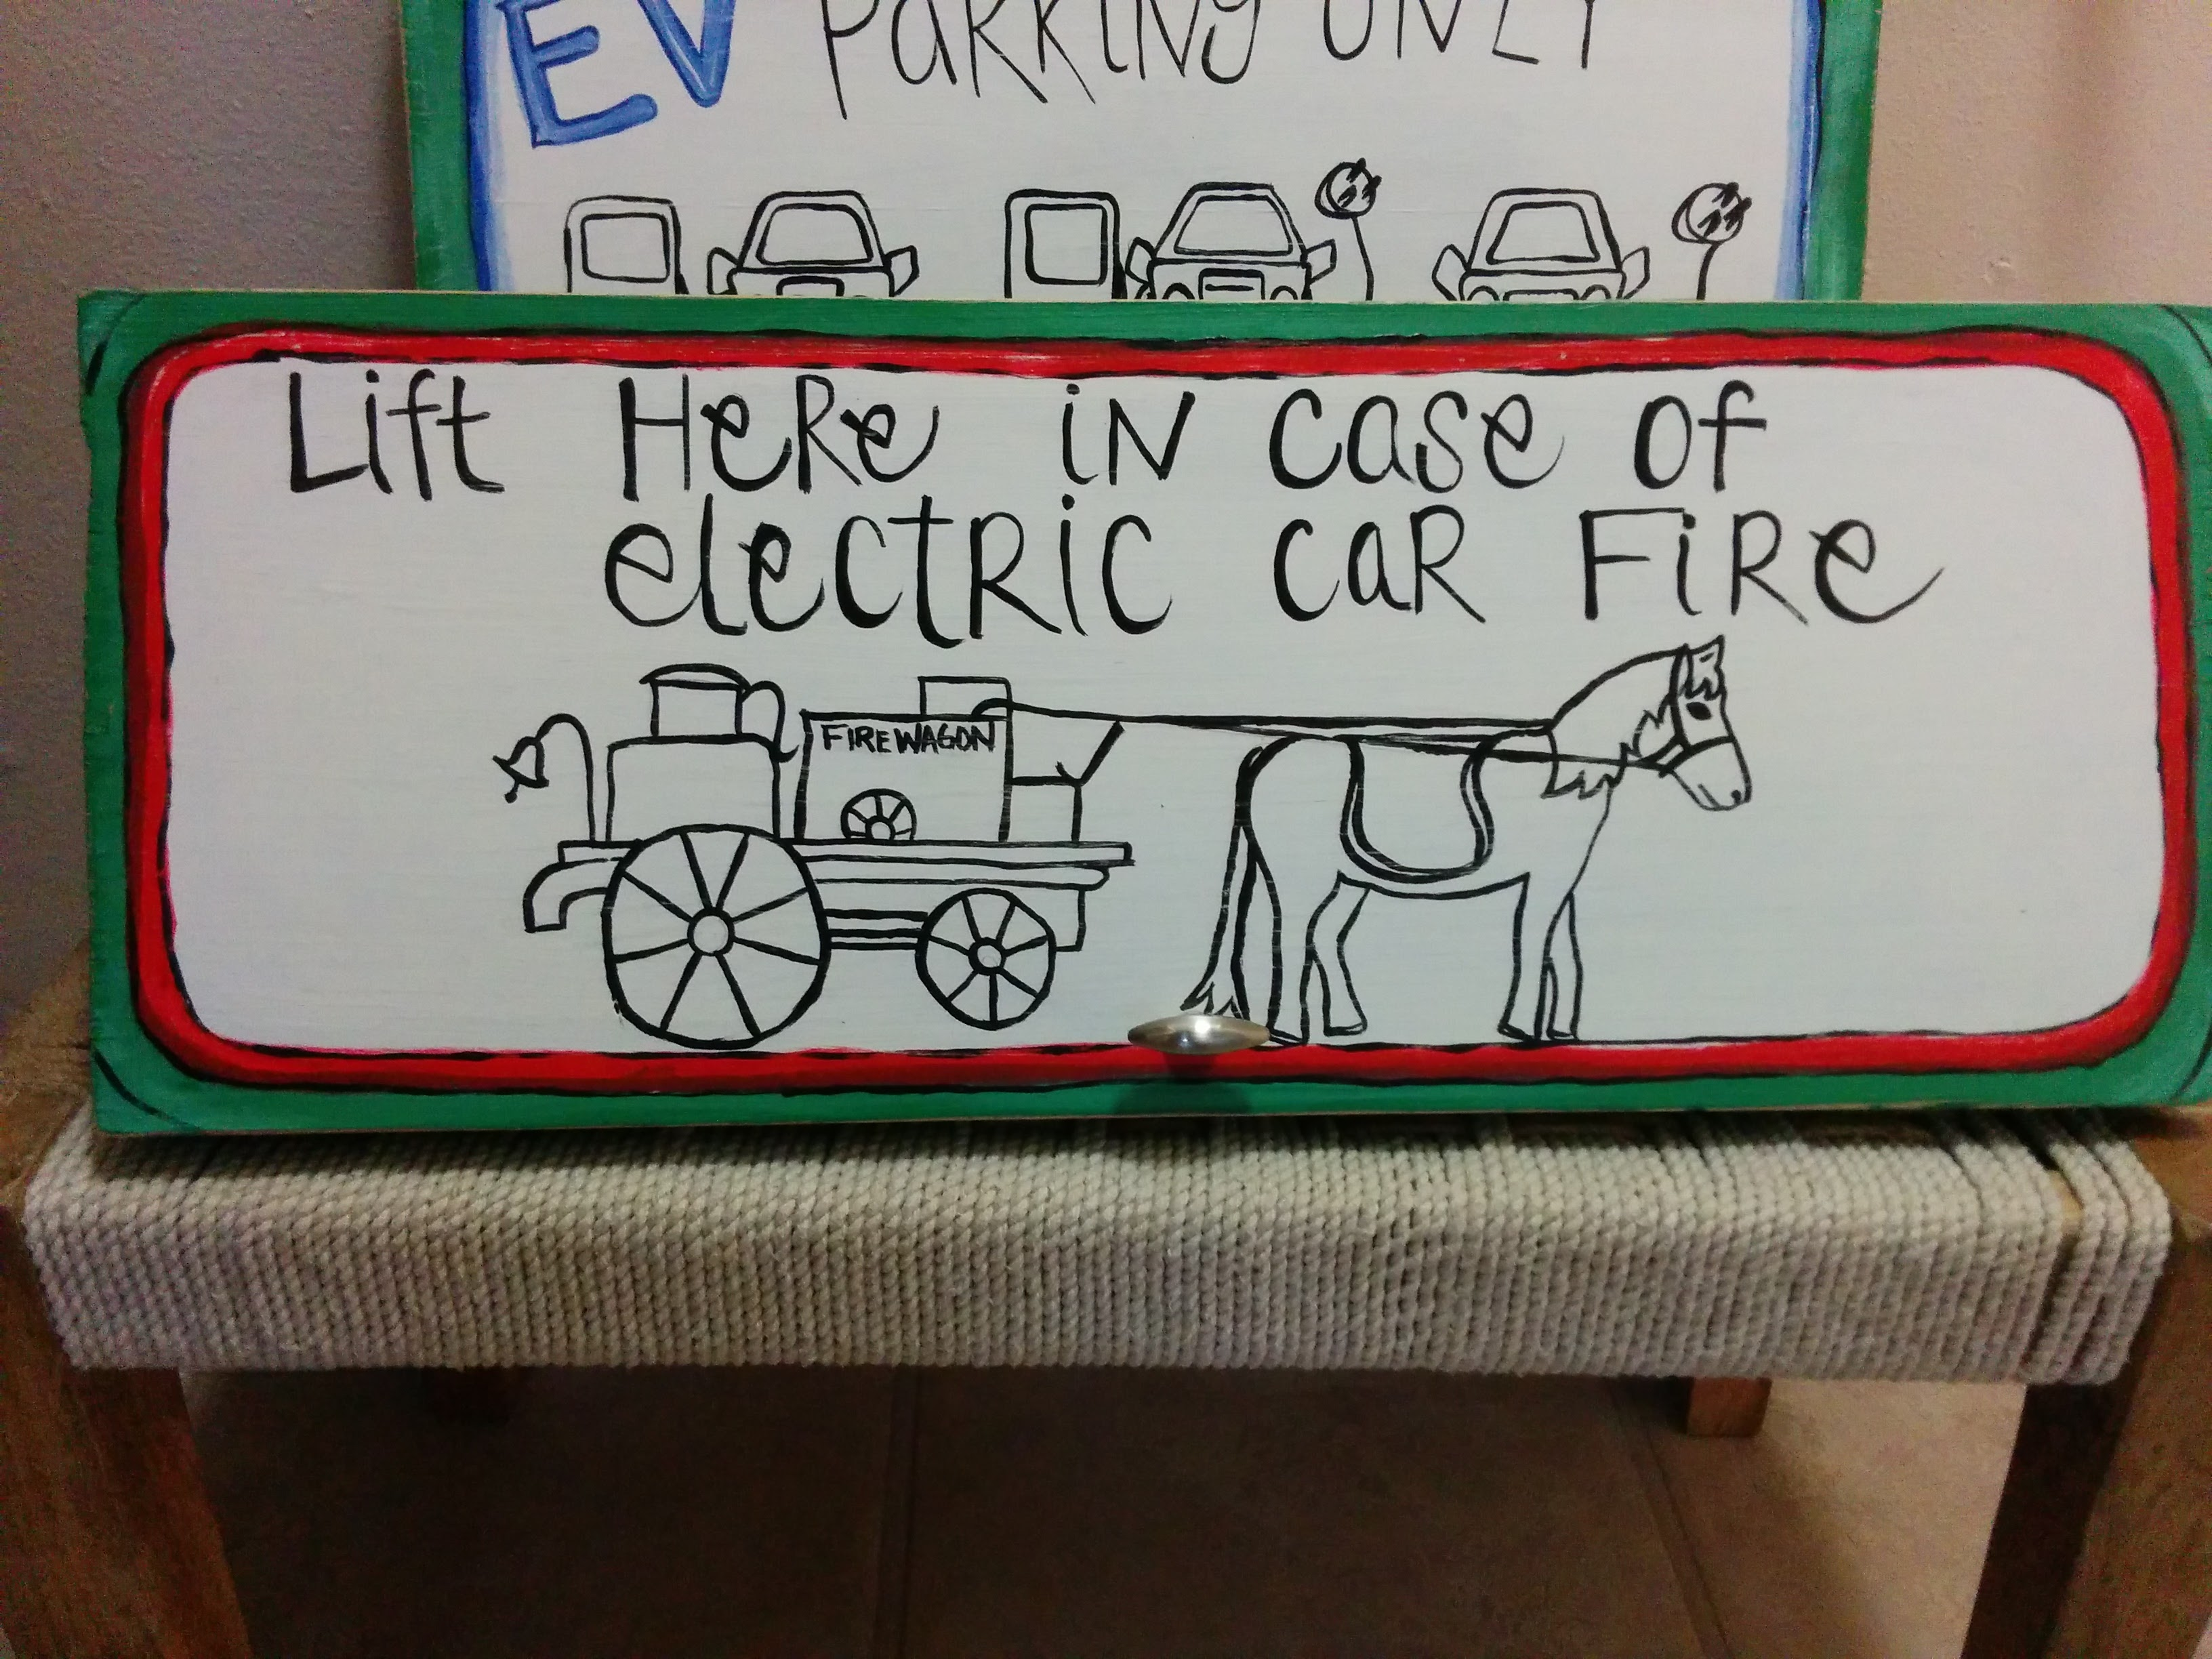 Electric Car Fire.jpg